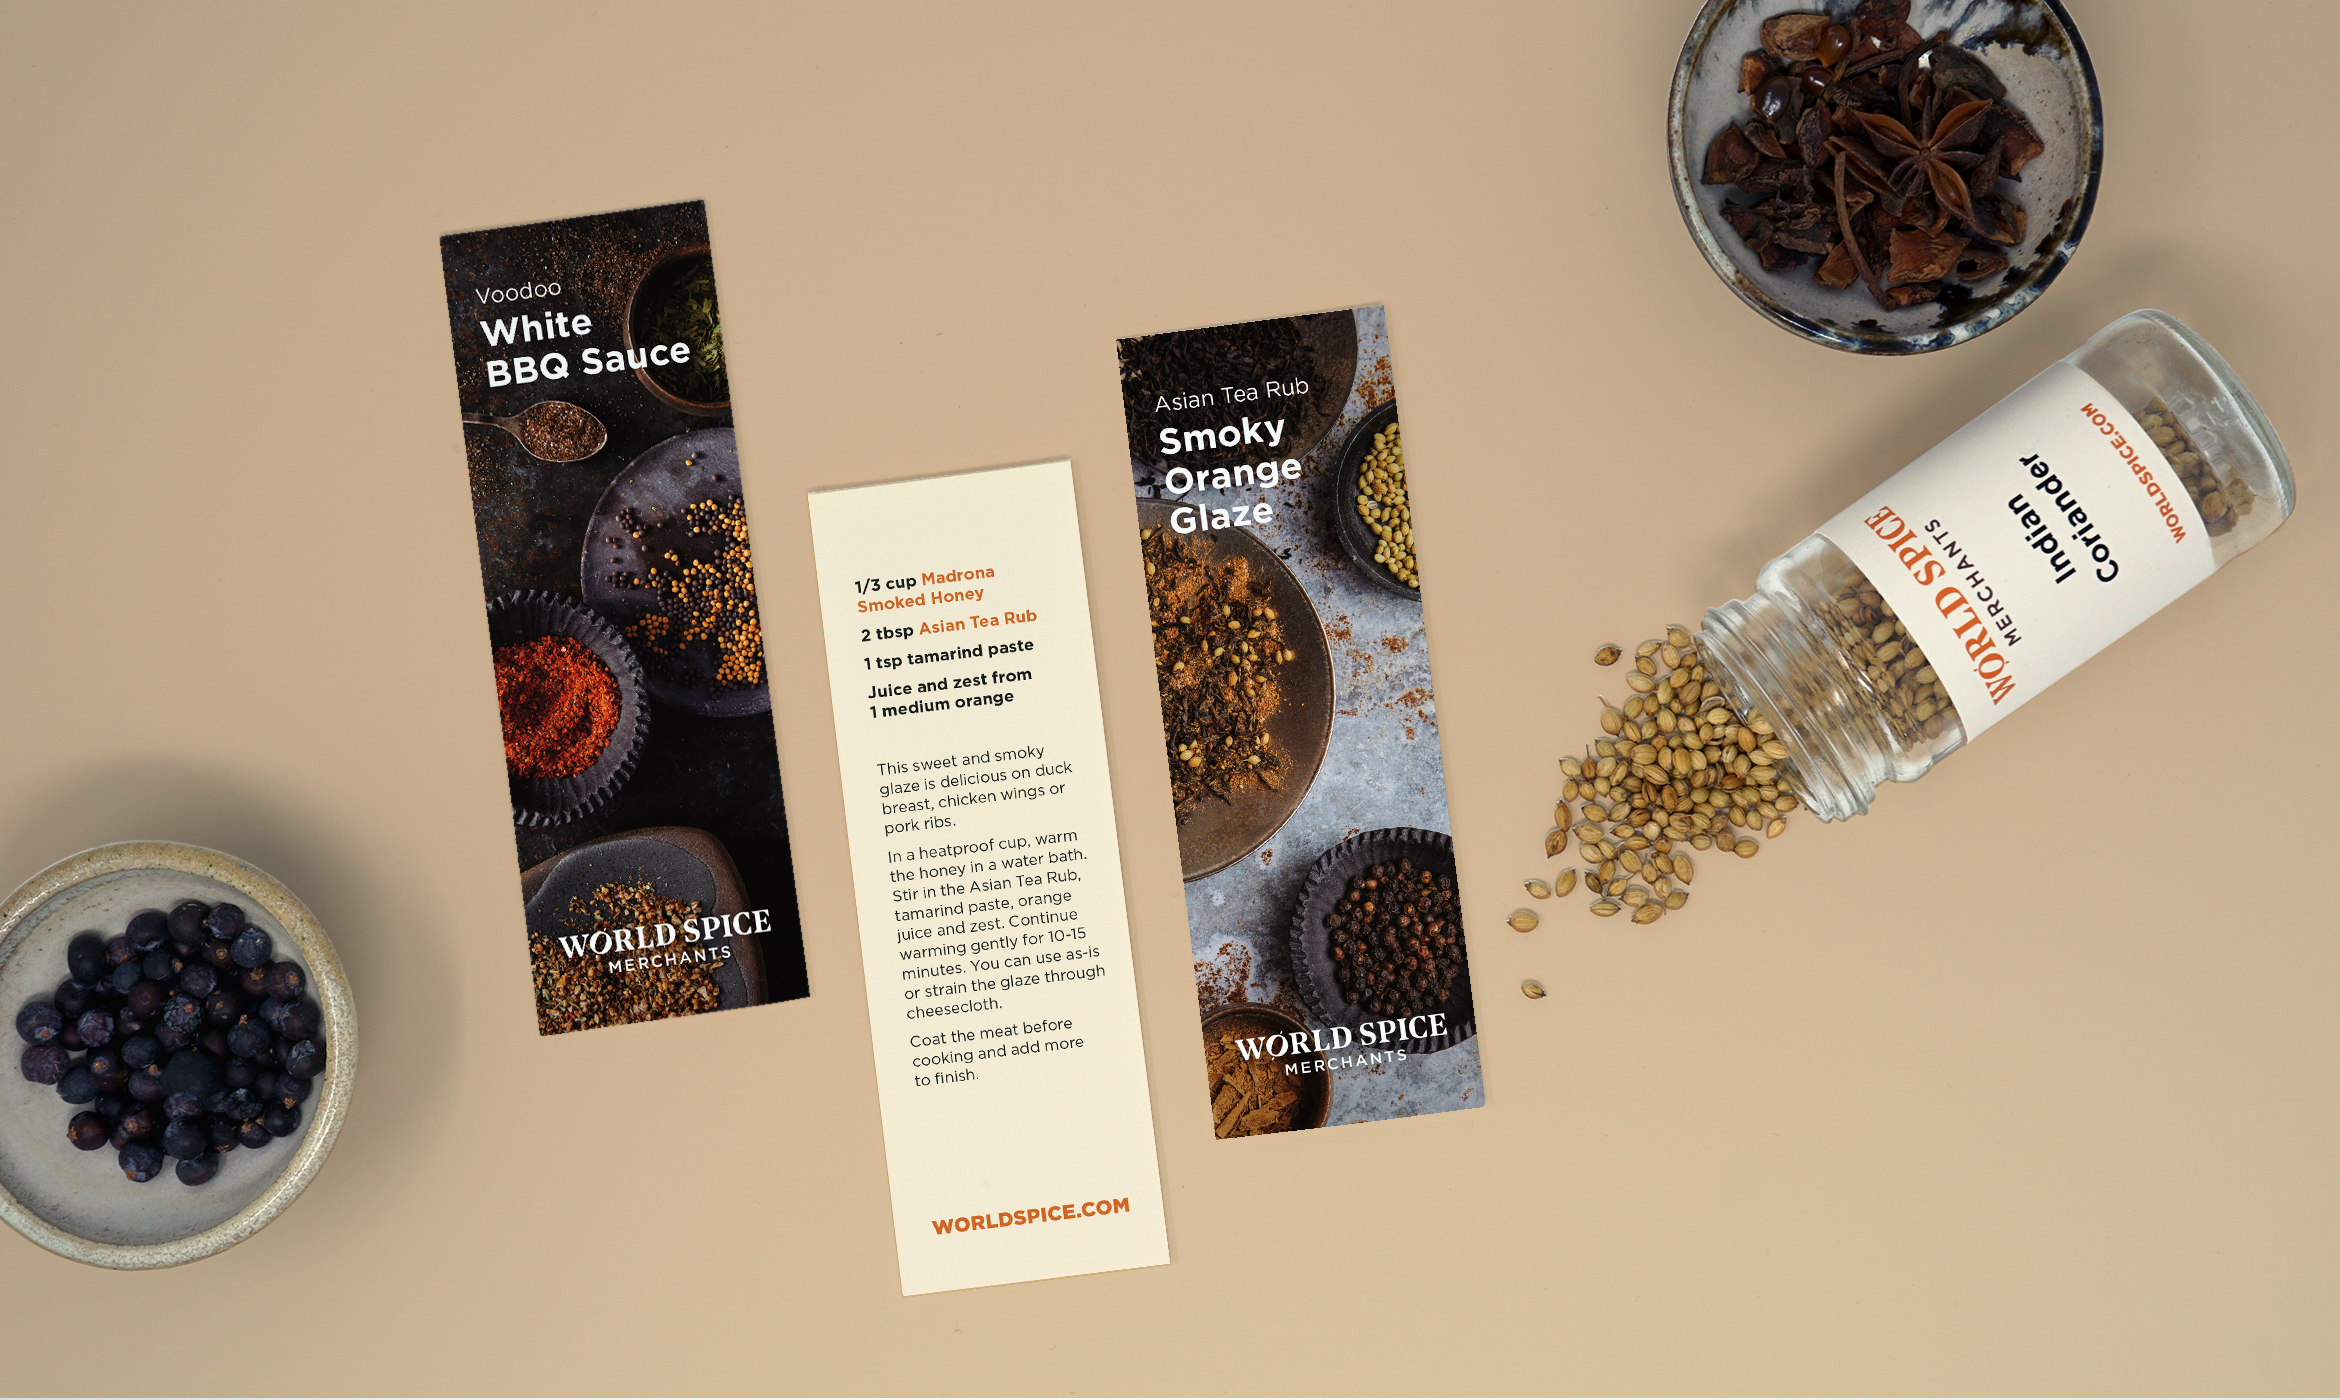 World Spice recipe bookmarks